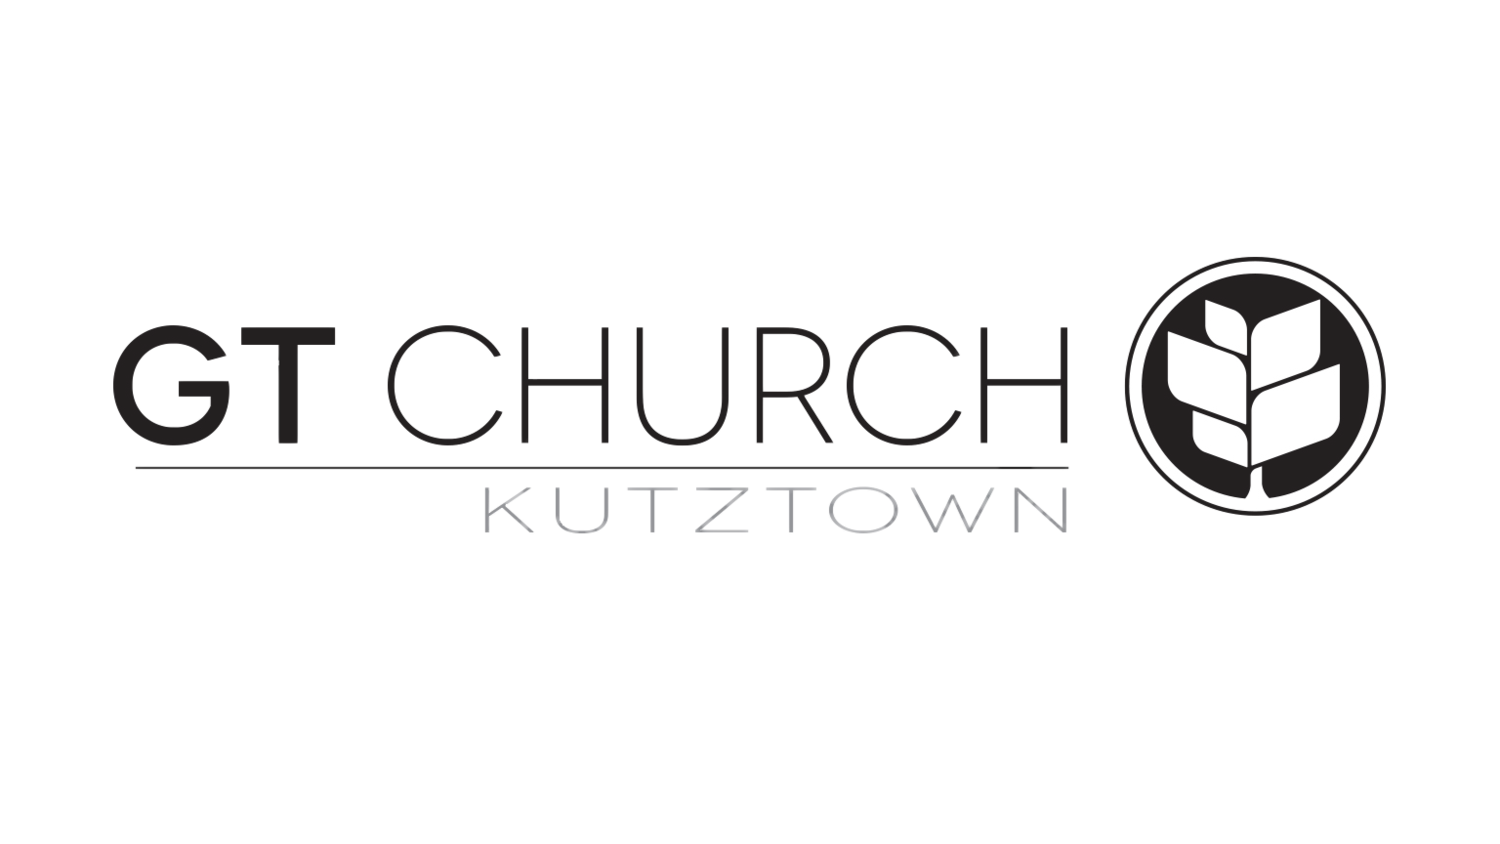 GT Church Kutztown